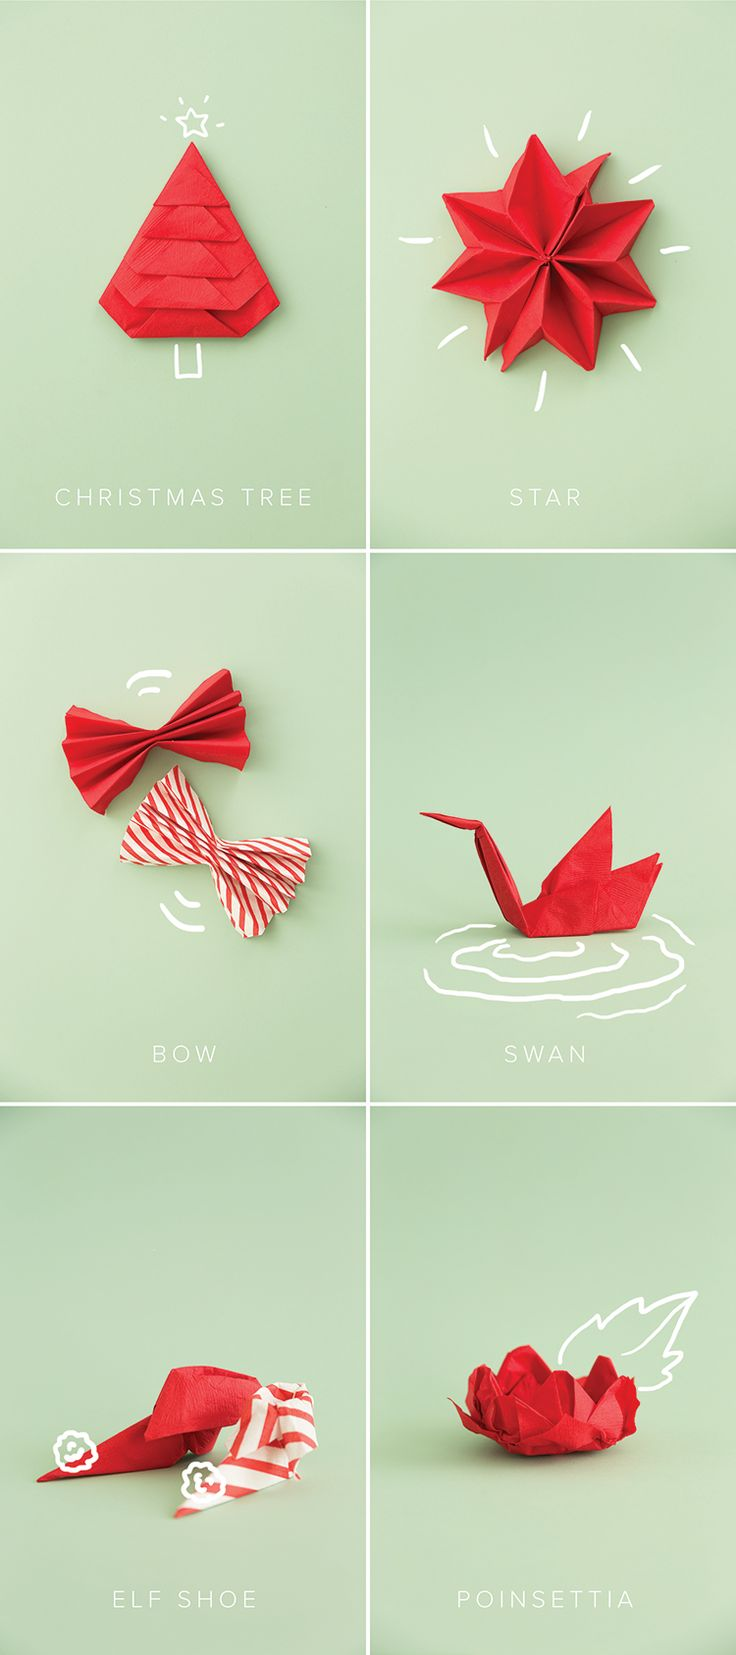 Get in the festive spirit by learning the art of napkin folding! A fun activity that is easy and passes the time!